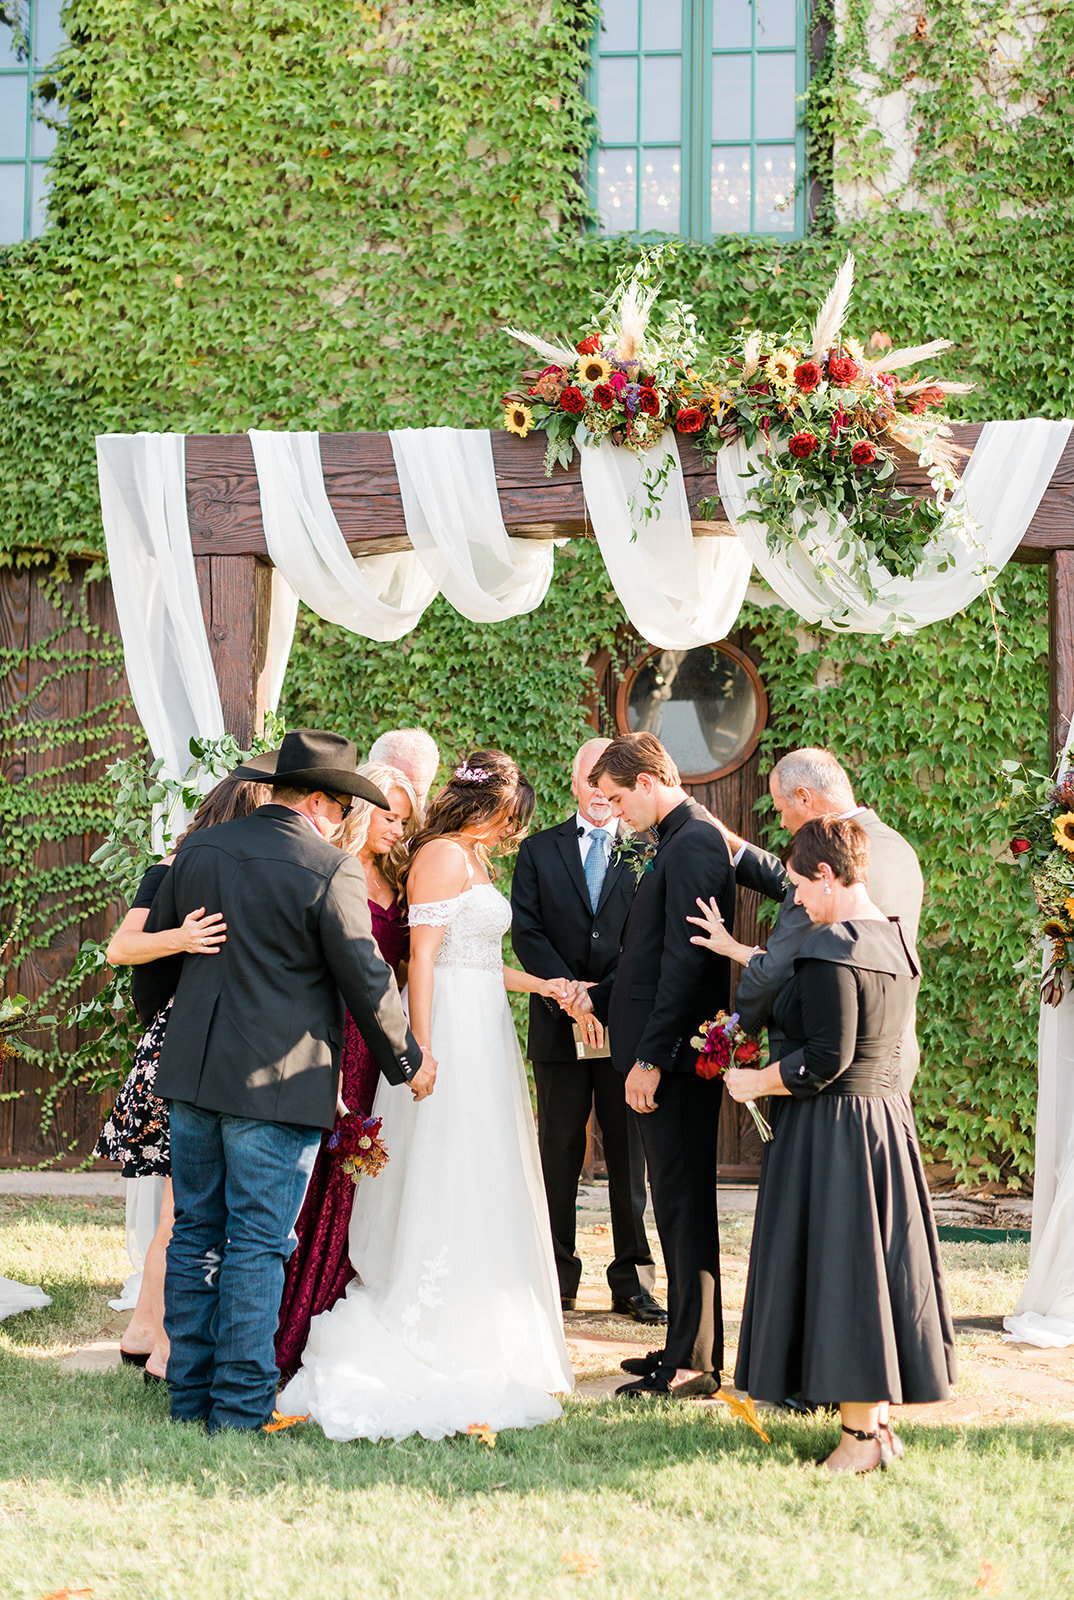 56-family-prayer-wedding-ceremony